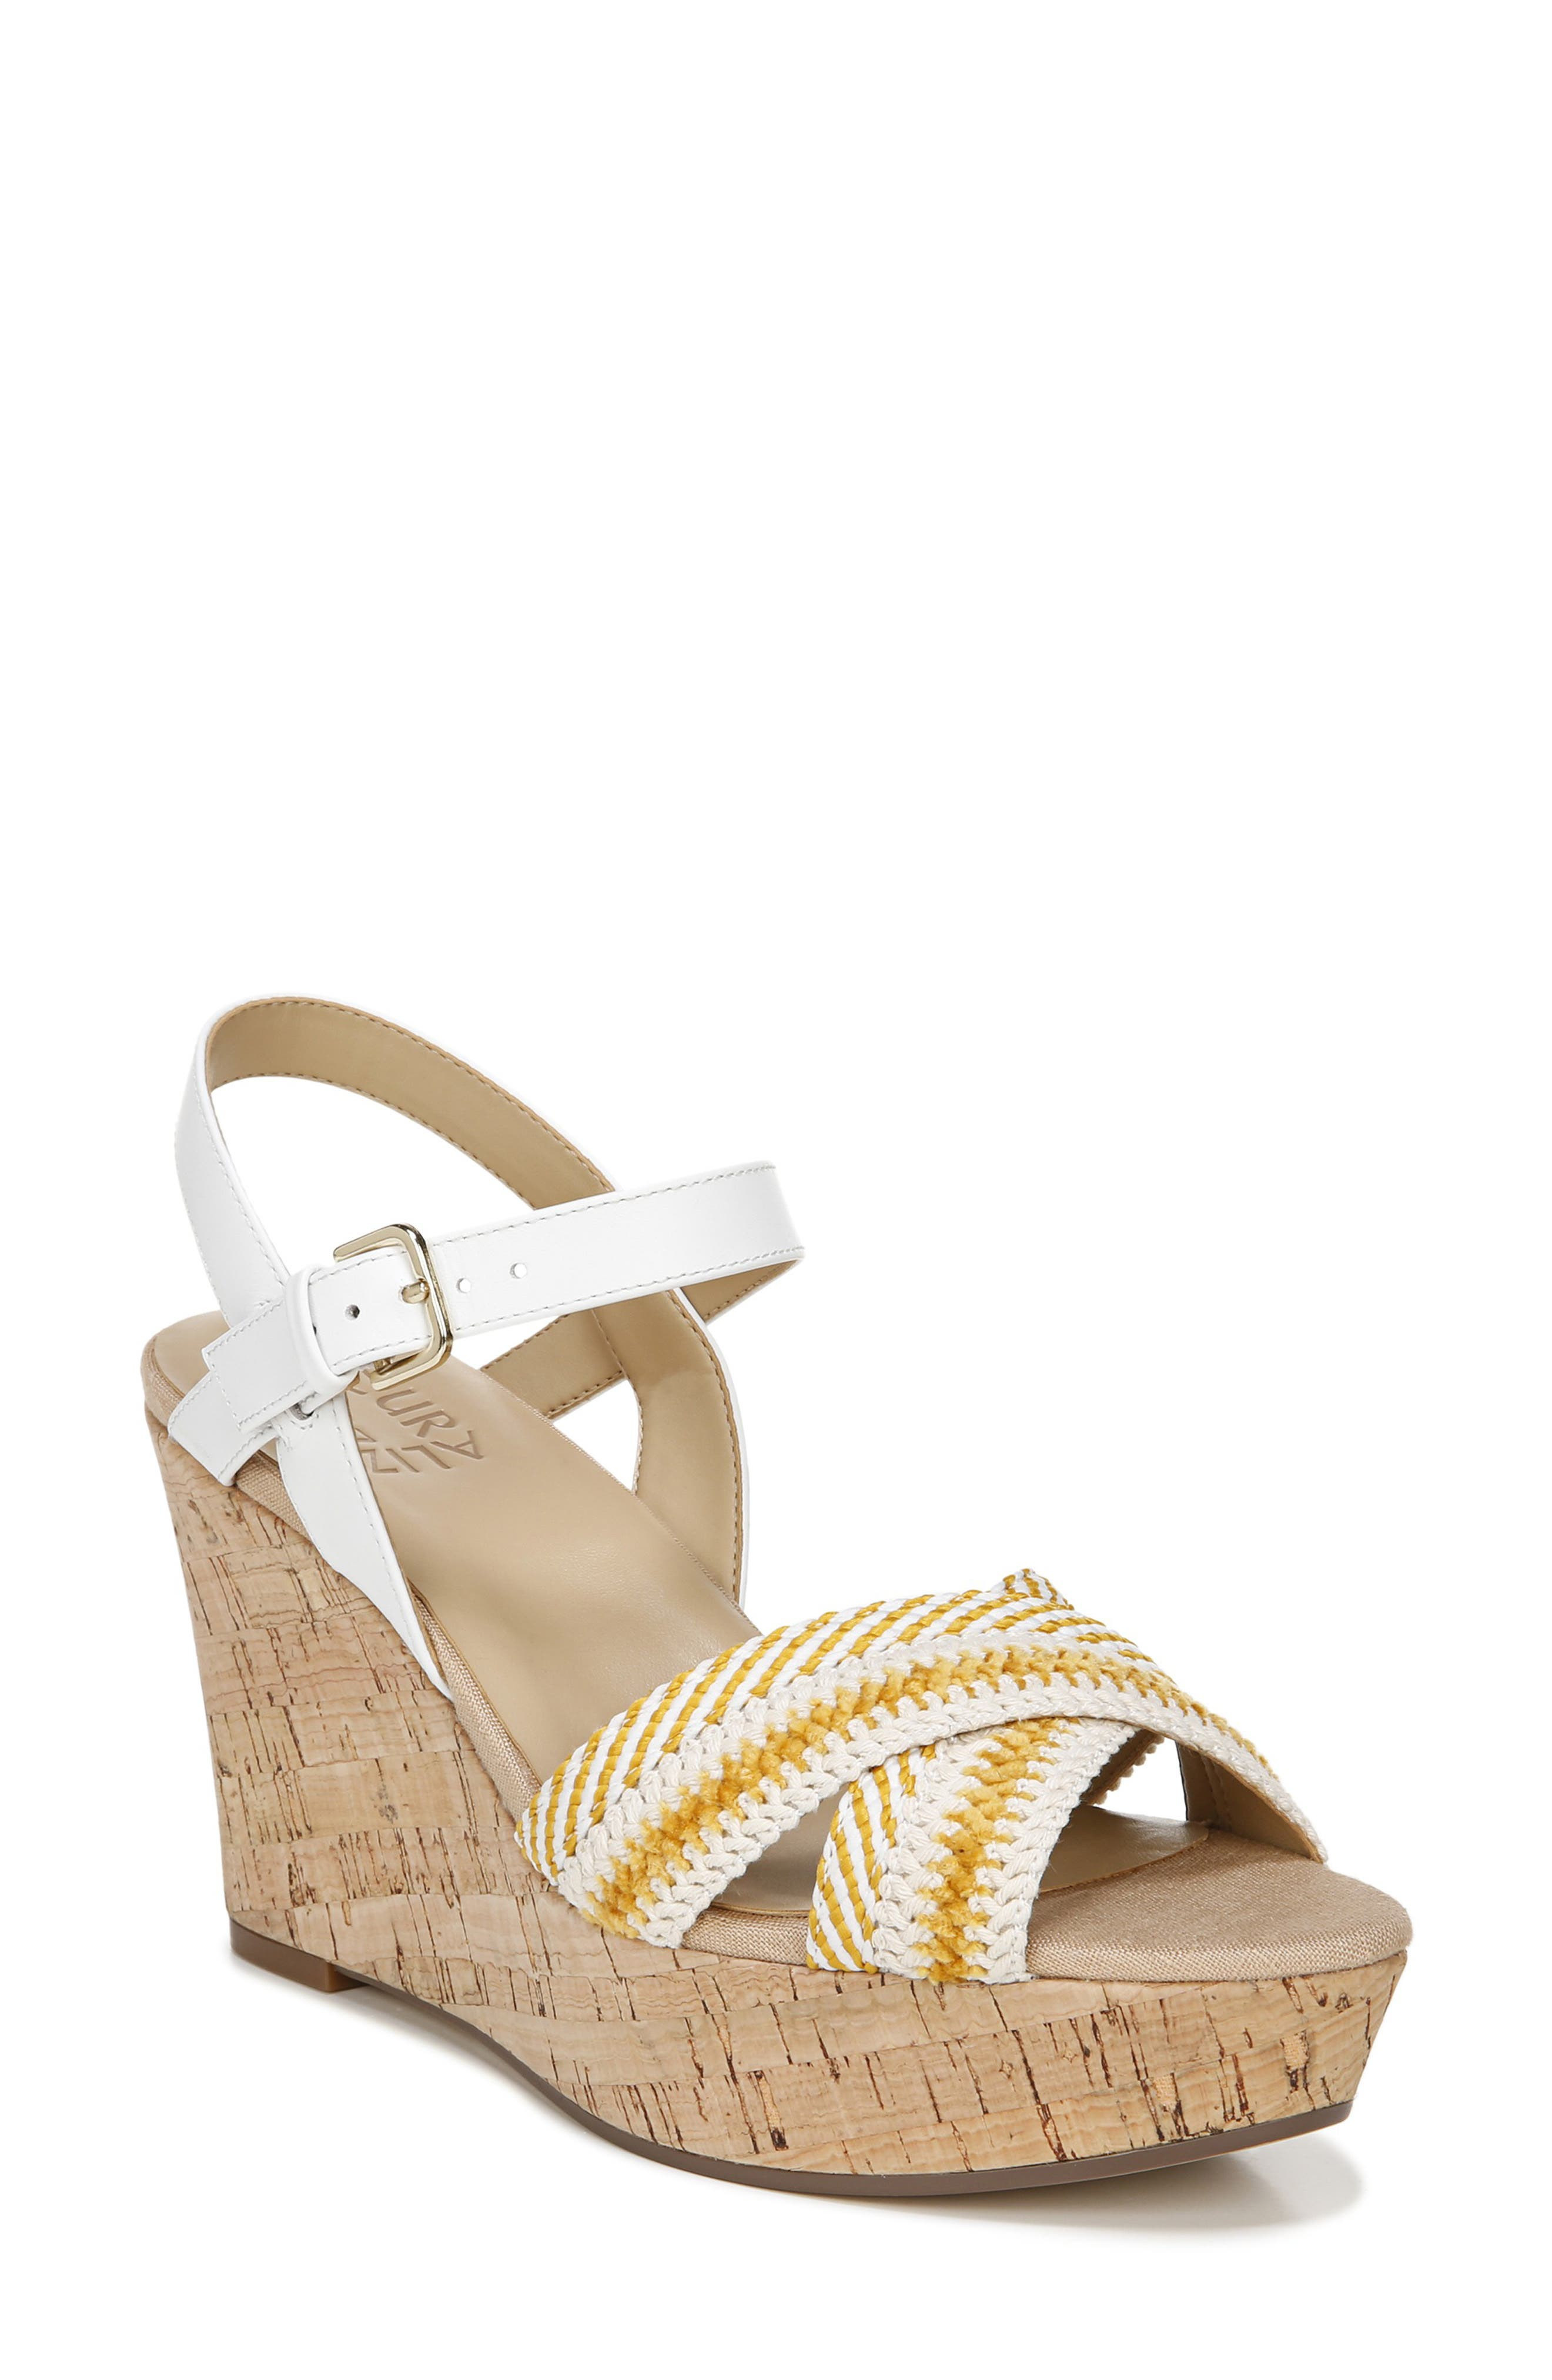 A retro crisscross quarter-strap sandal is beautifully lifted on a textured platform that gets stability and cushioning from Comfort Plus technology. Style Name: Naturalizer Zia Platform Wedge Sandal (Women). Style Number: 6015150. Available in stores.